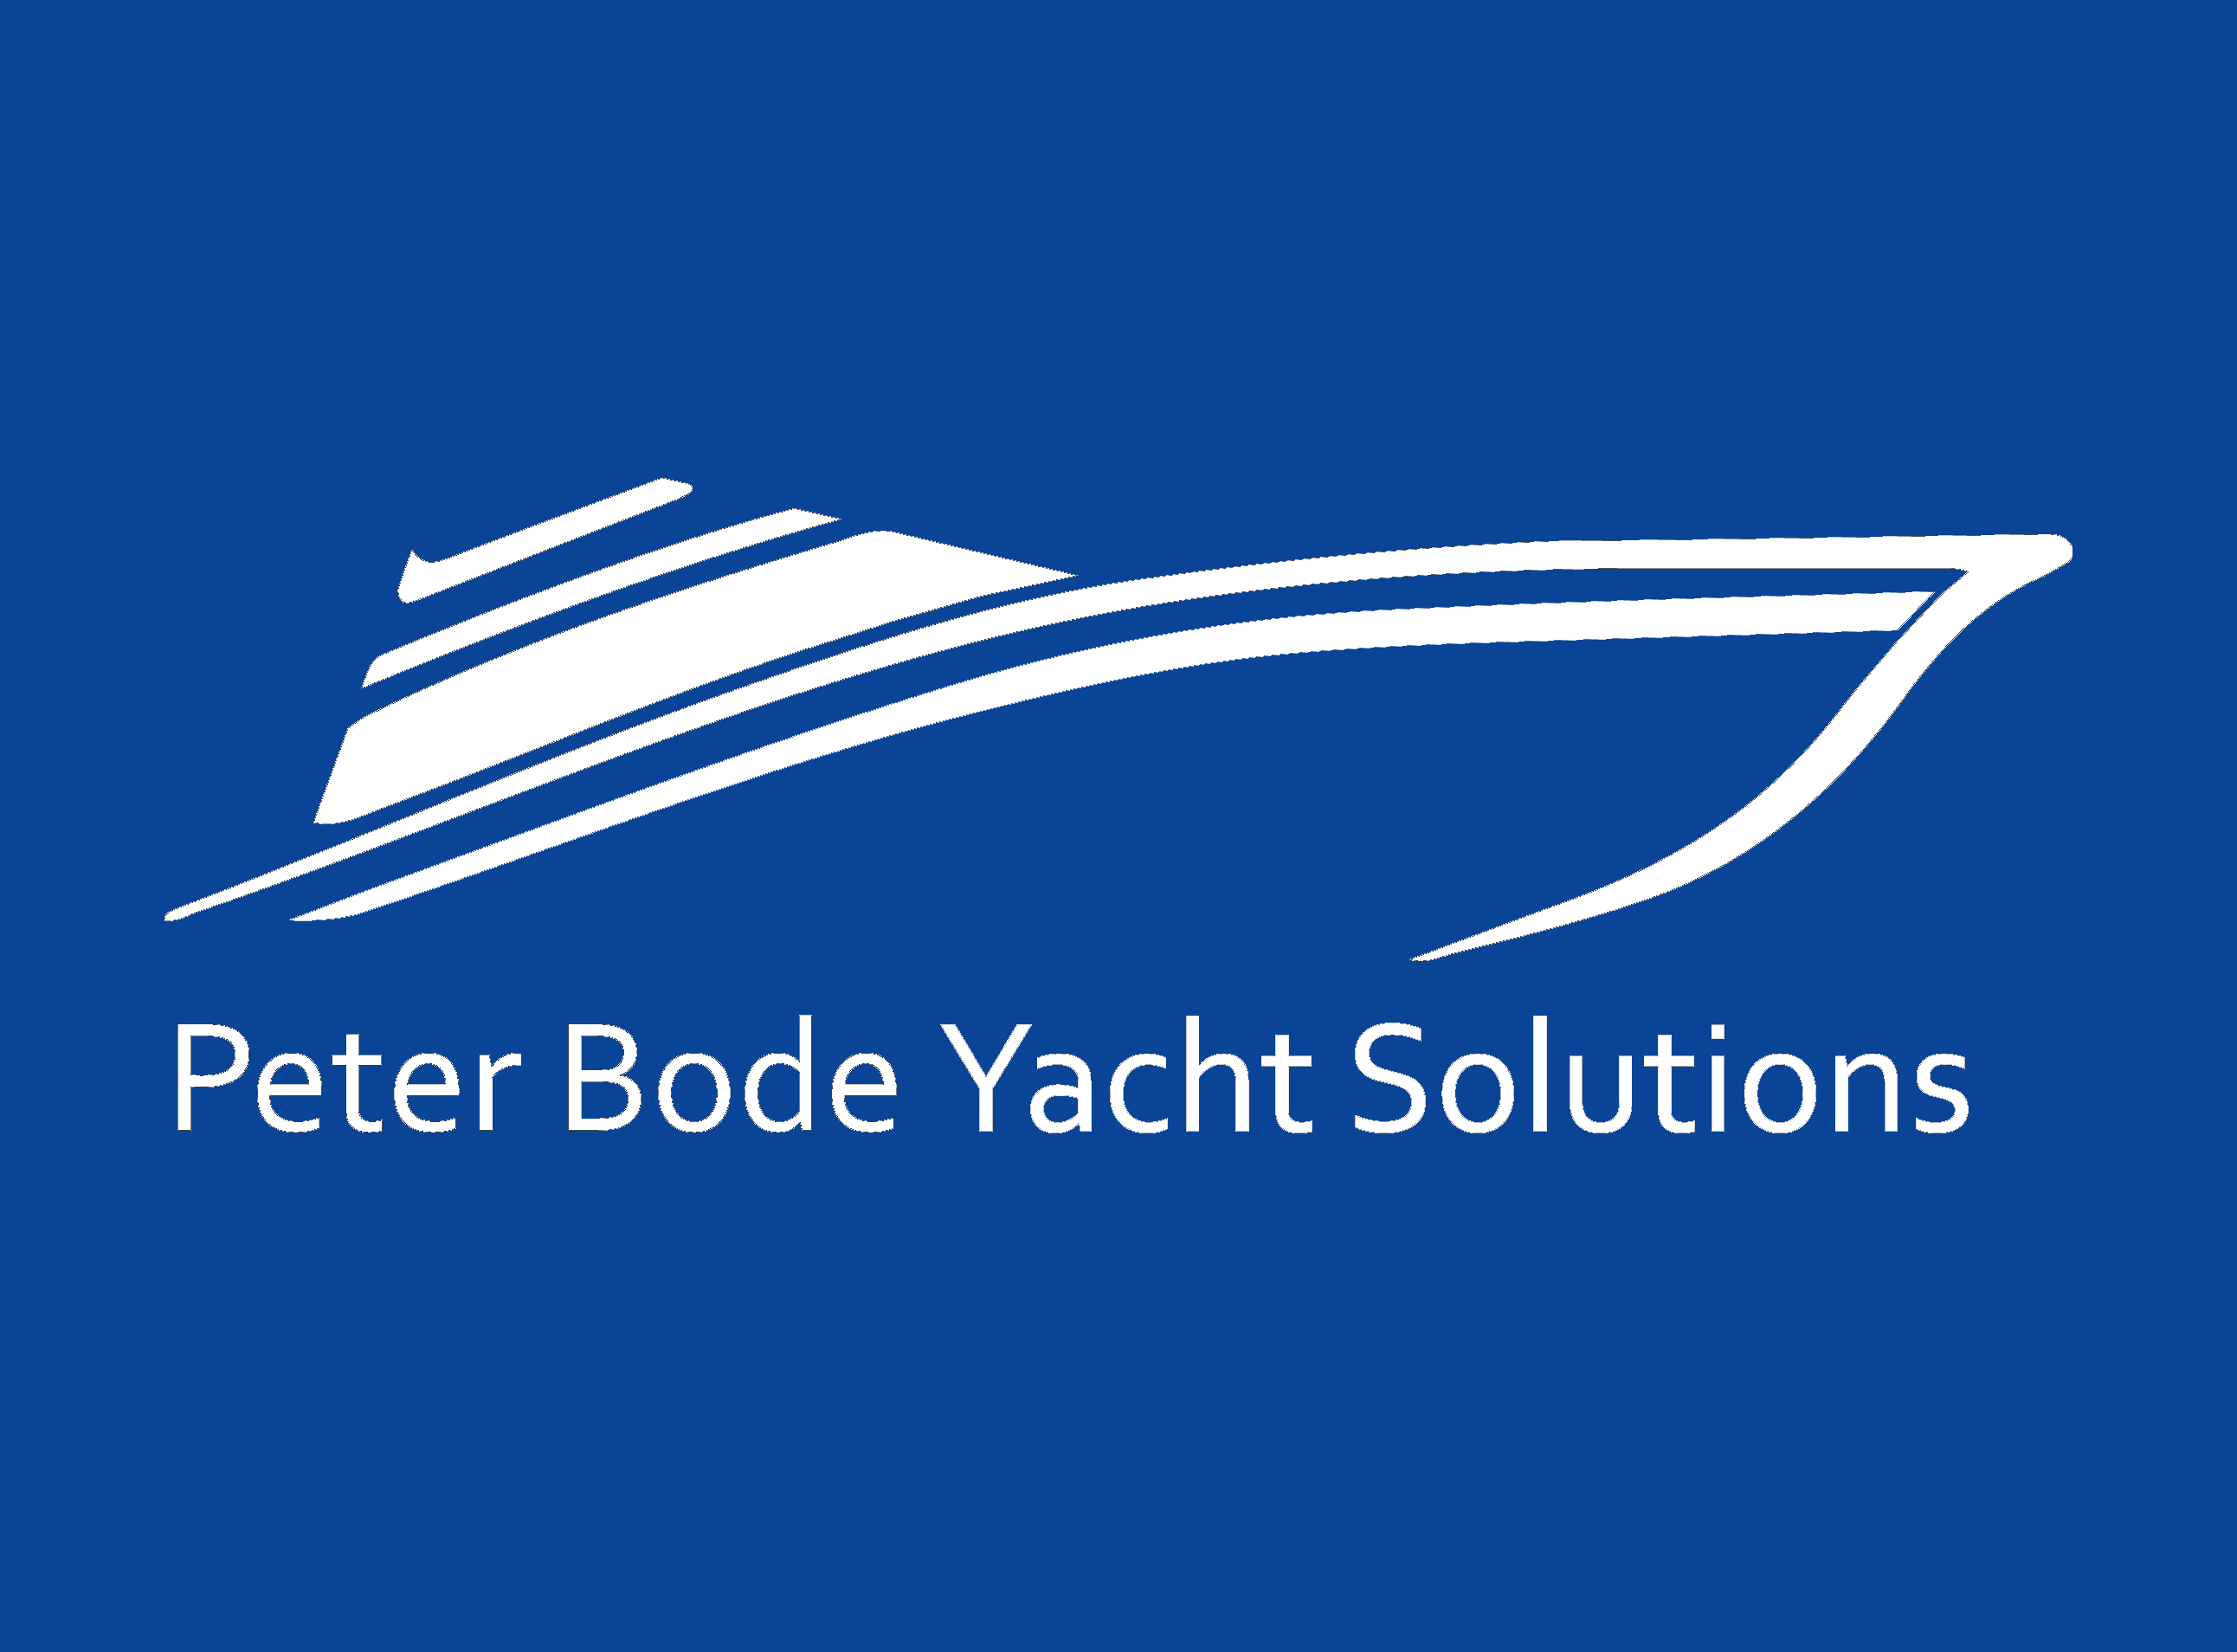 Peter Bode Yacht Solutions